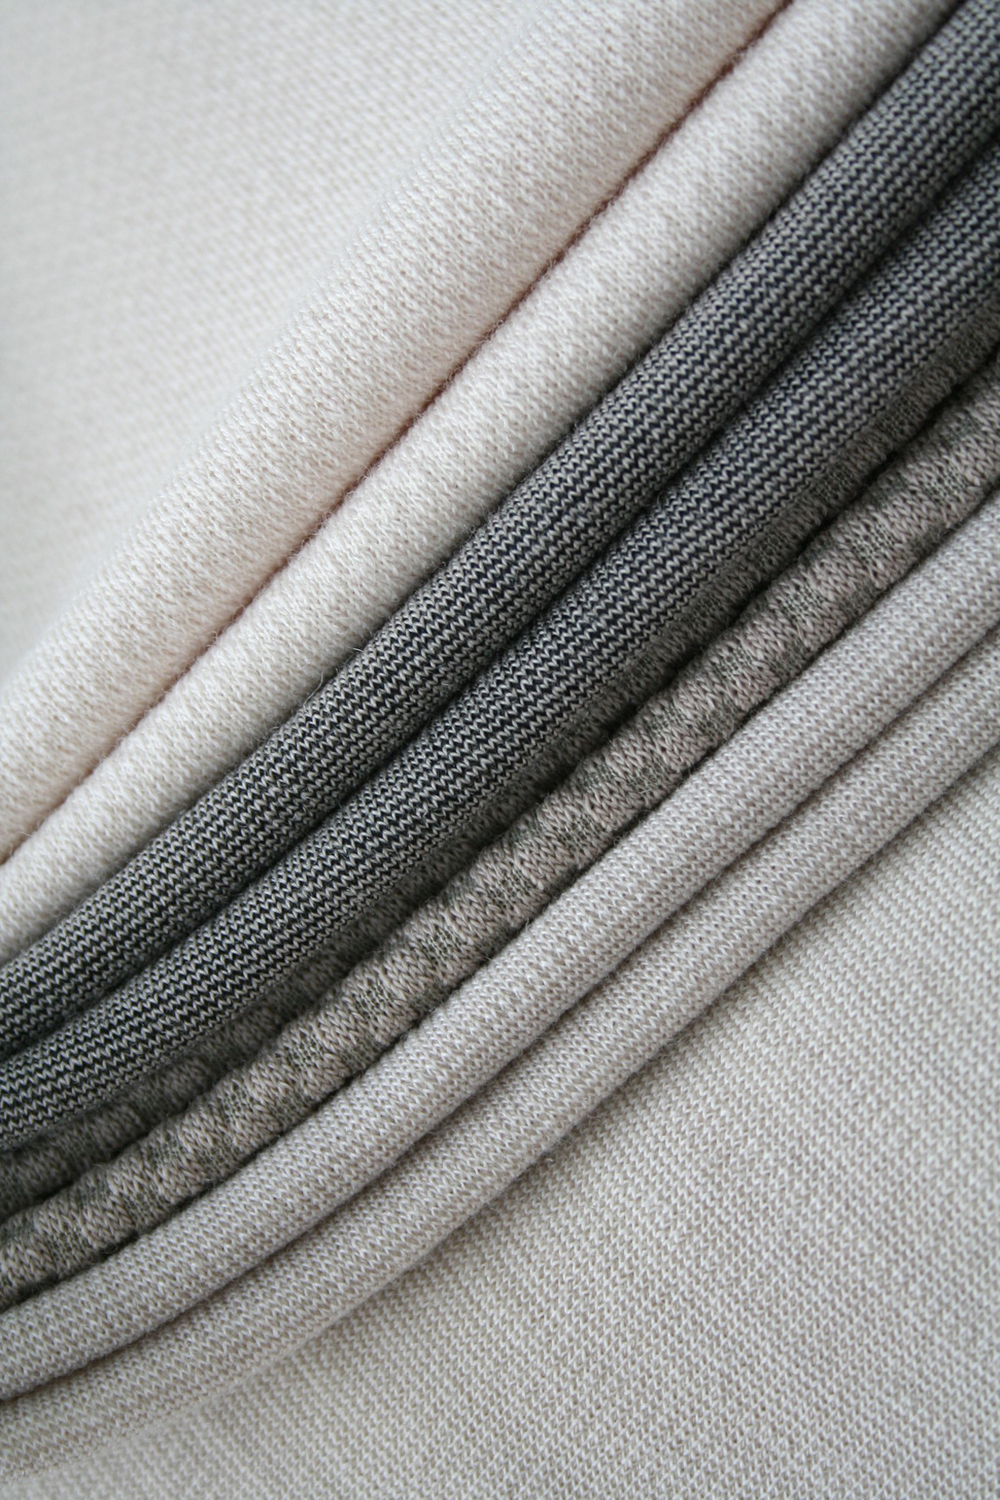 INNOFACollection Fabrics1.jpg